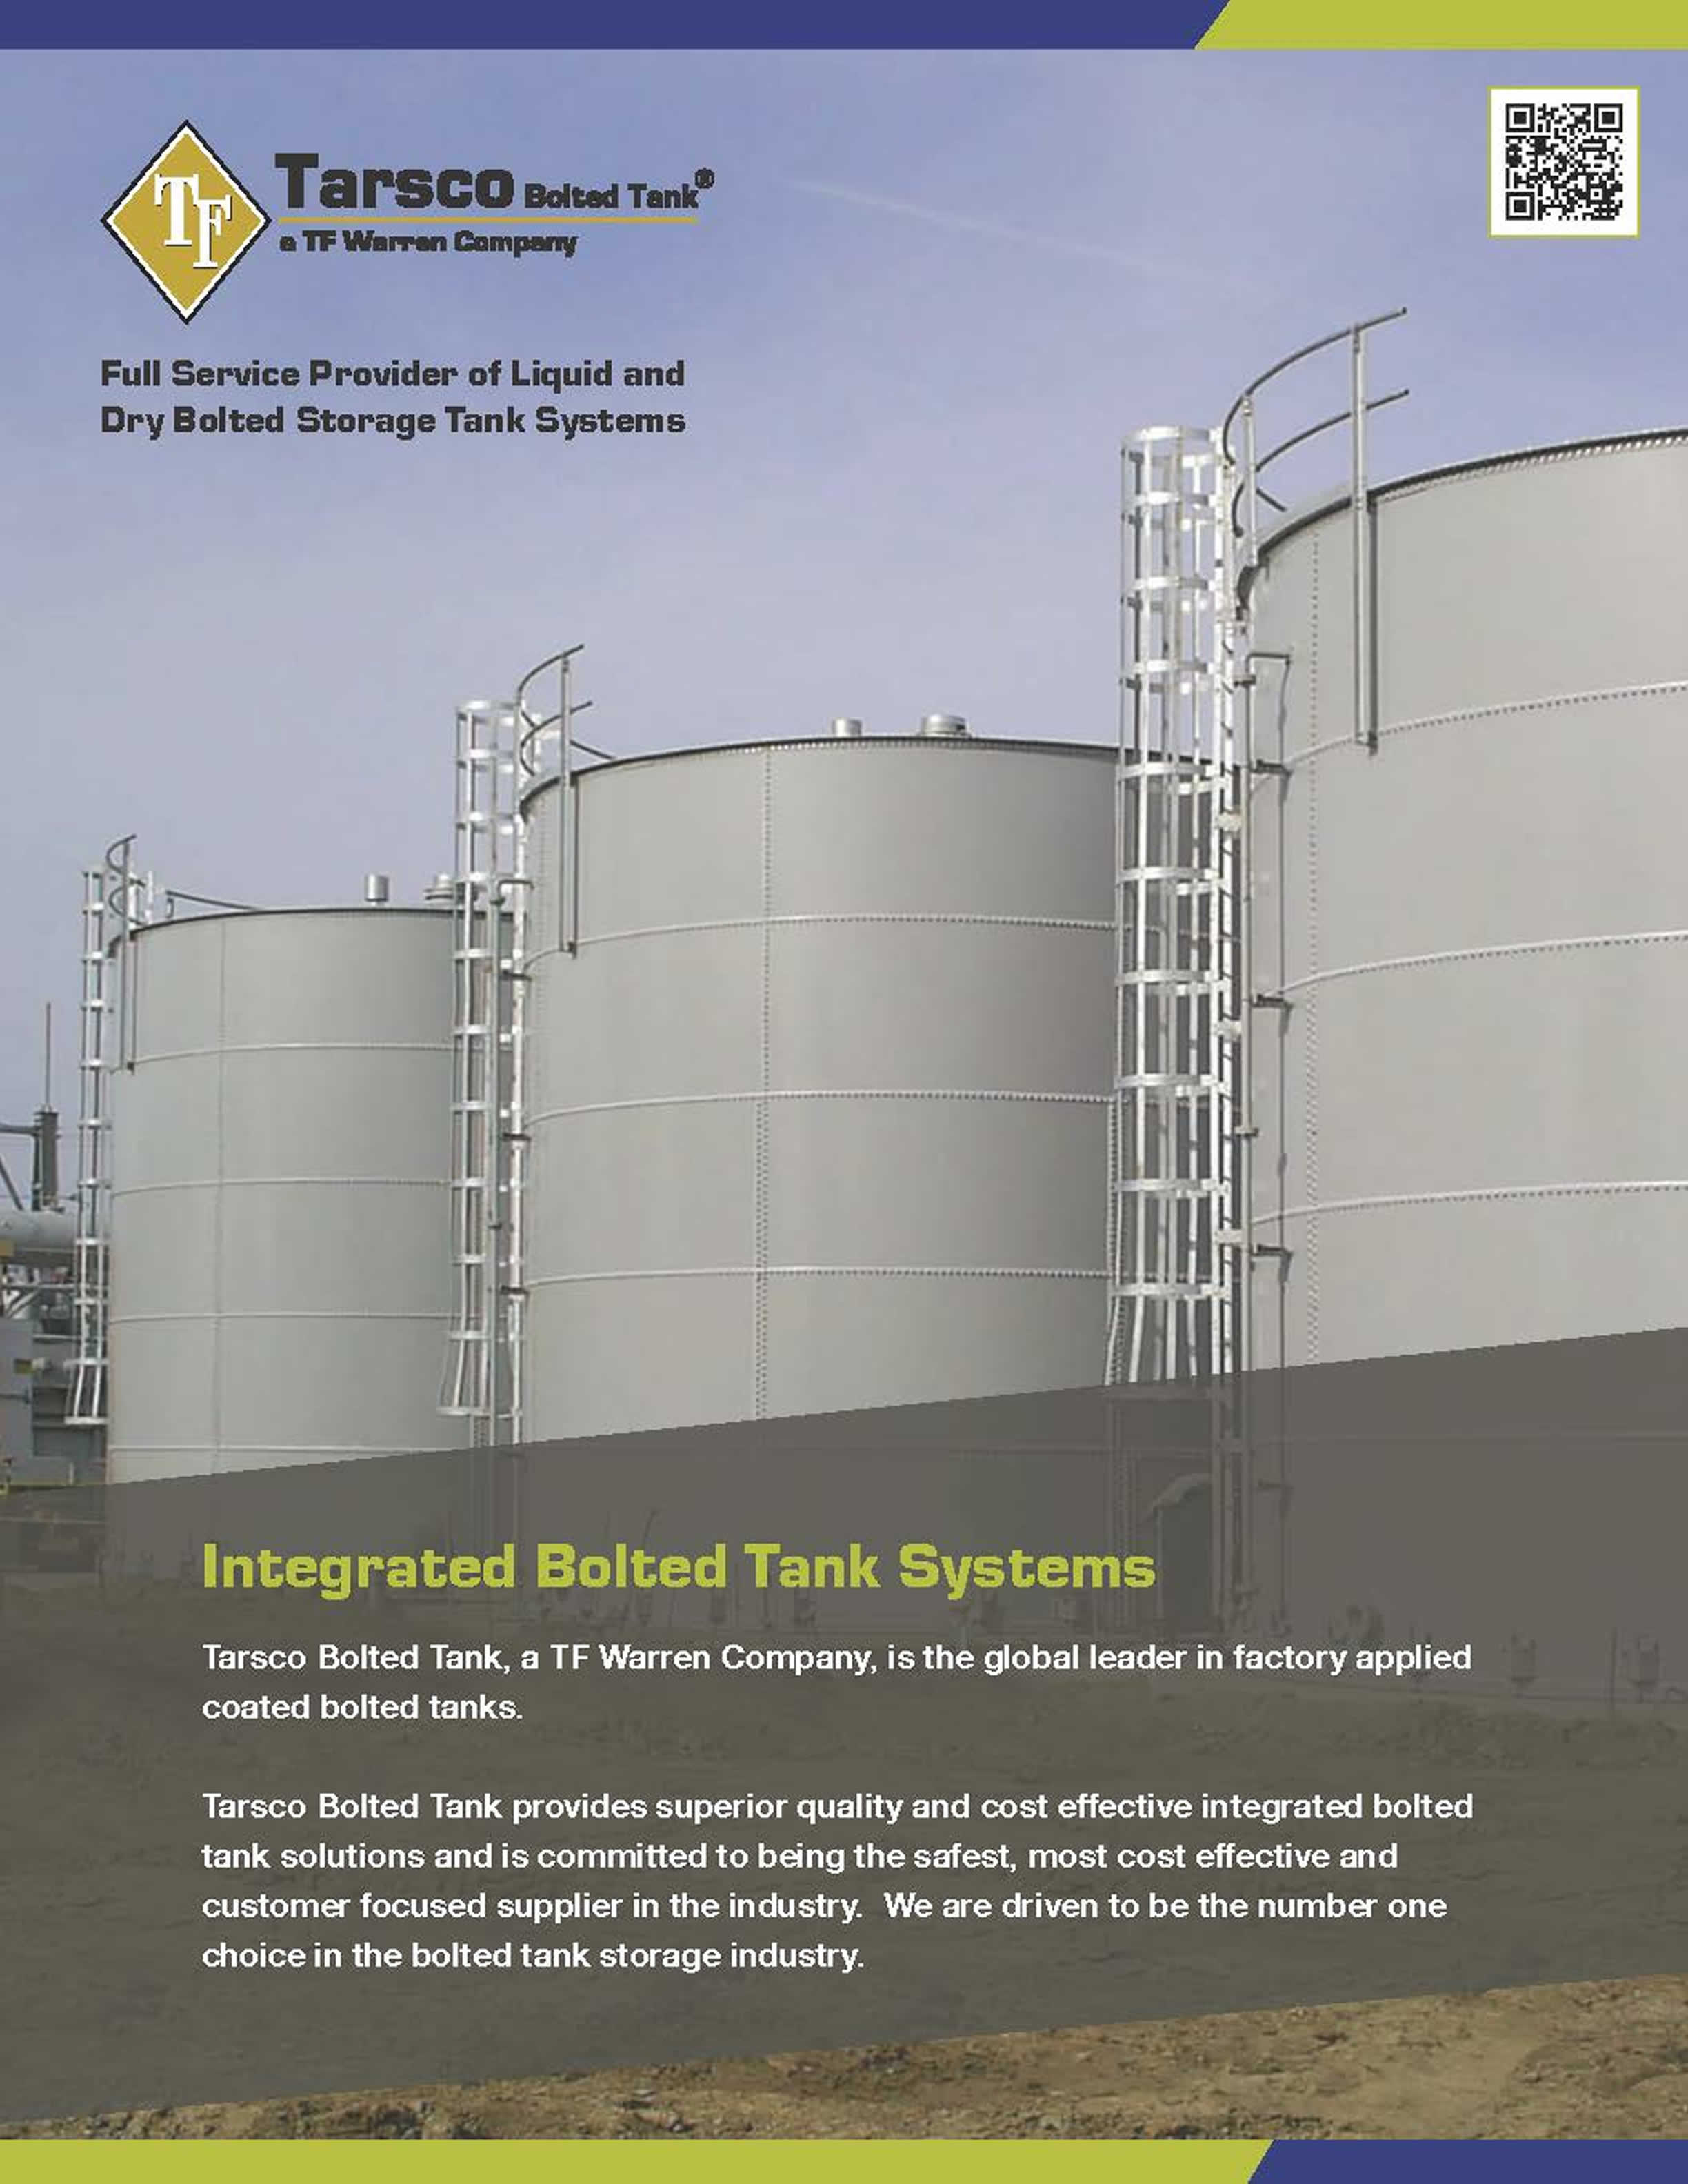 Integrated Bolted Tank Systems